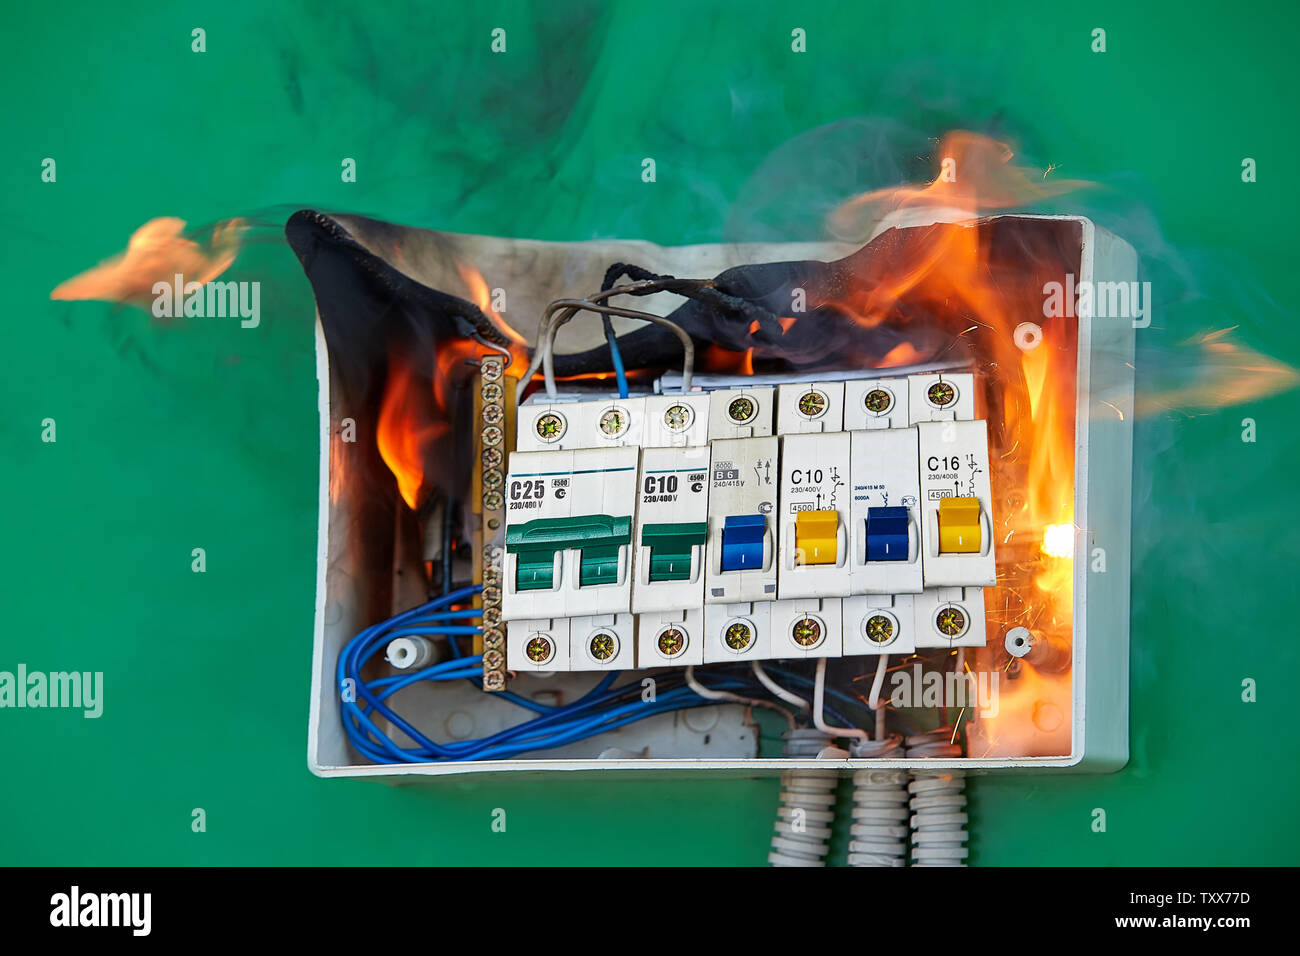 hight resolution of electrical faults of circuit breakers become the cause of fire loose wires caused fire inside